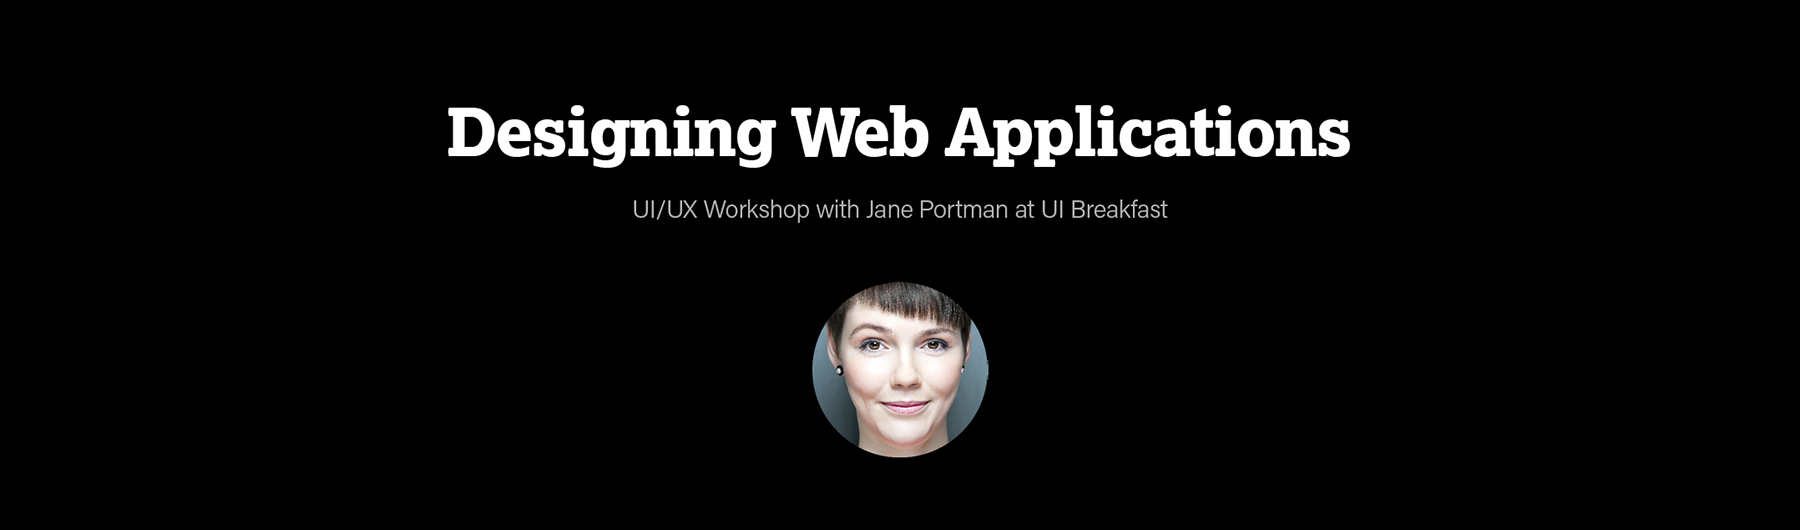 Designing Web Applications (Evening Workshop)